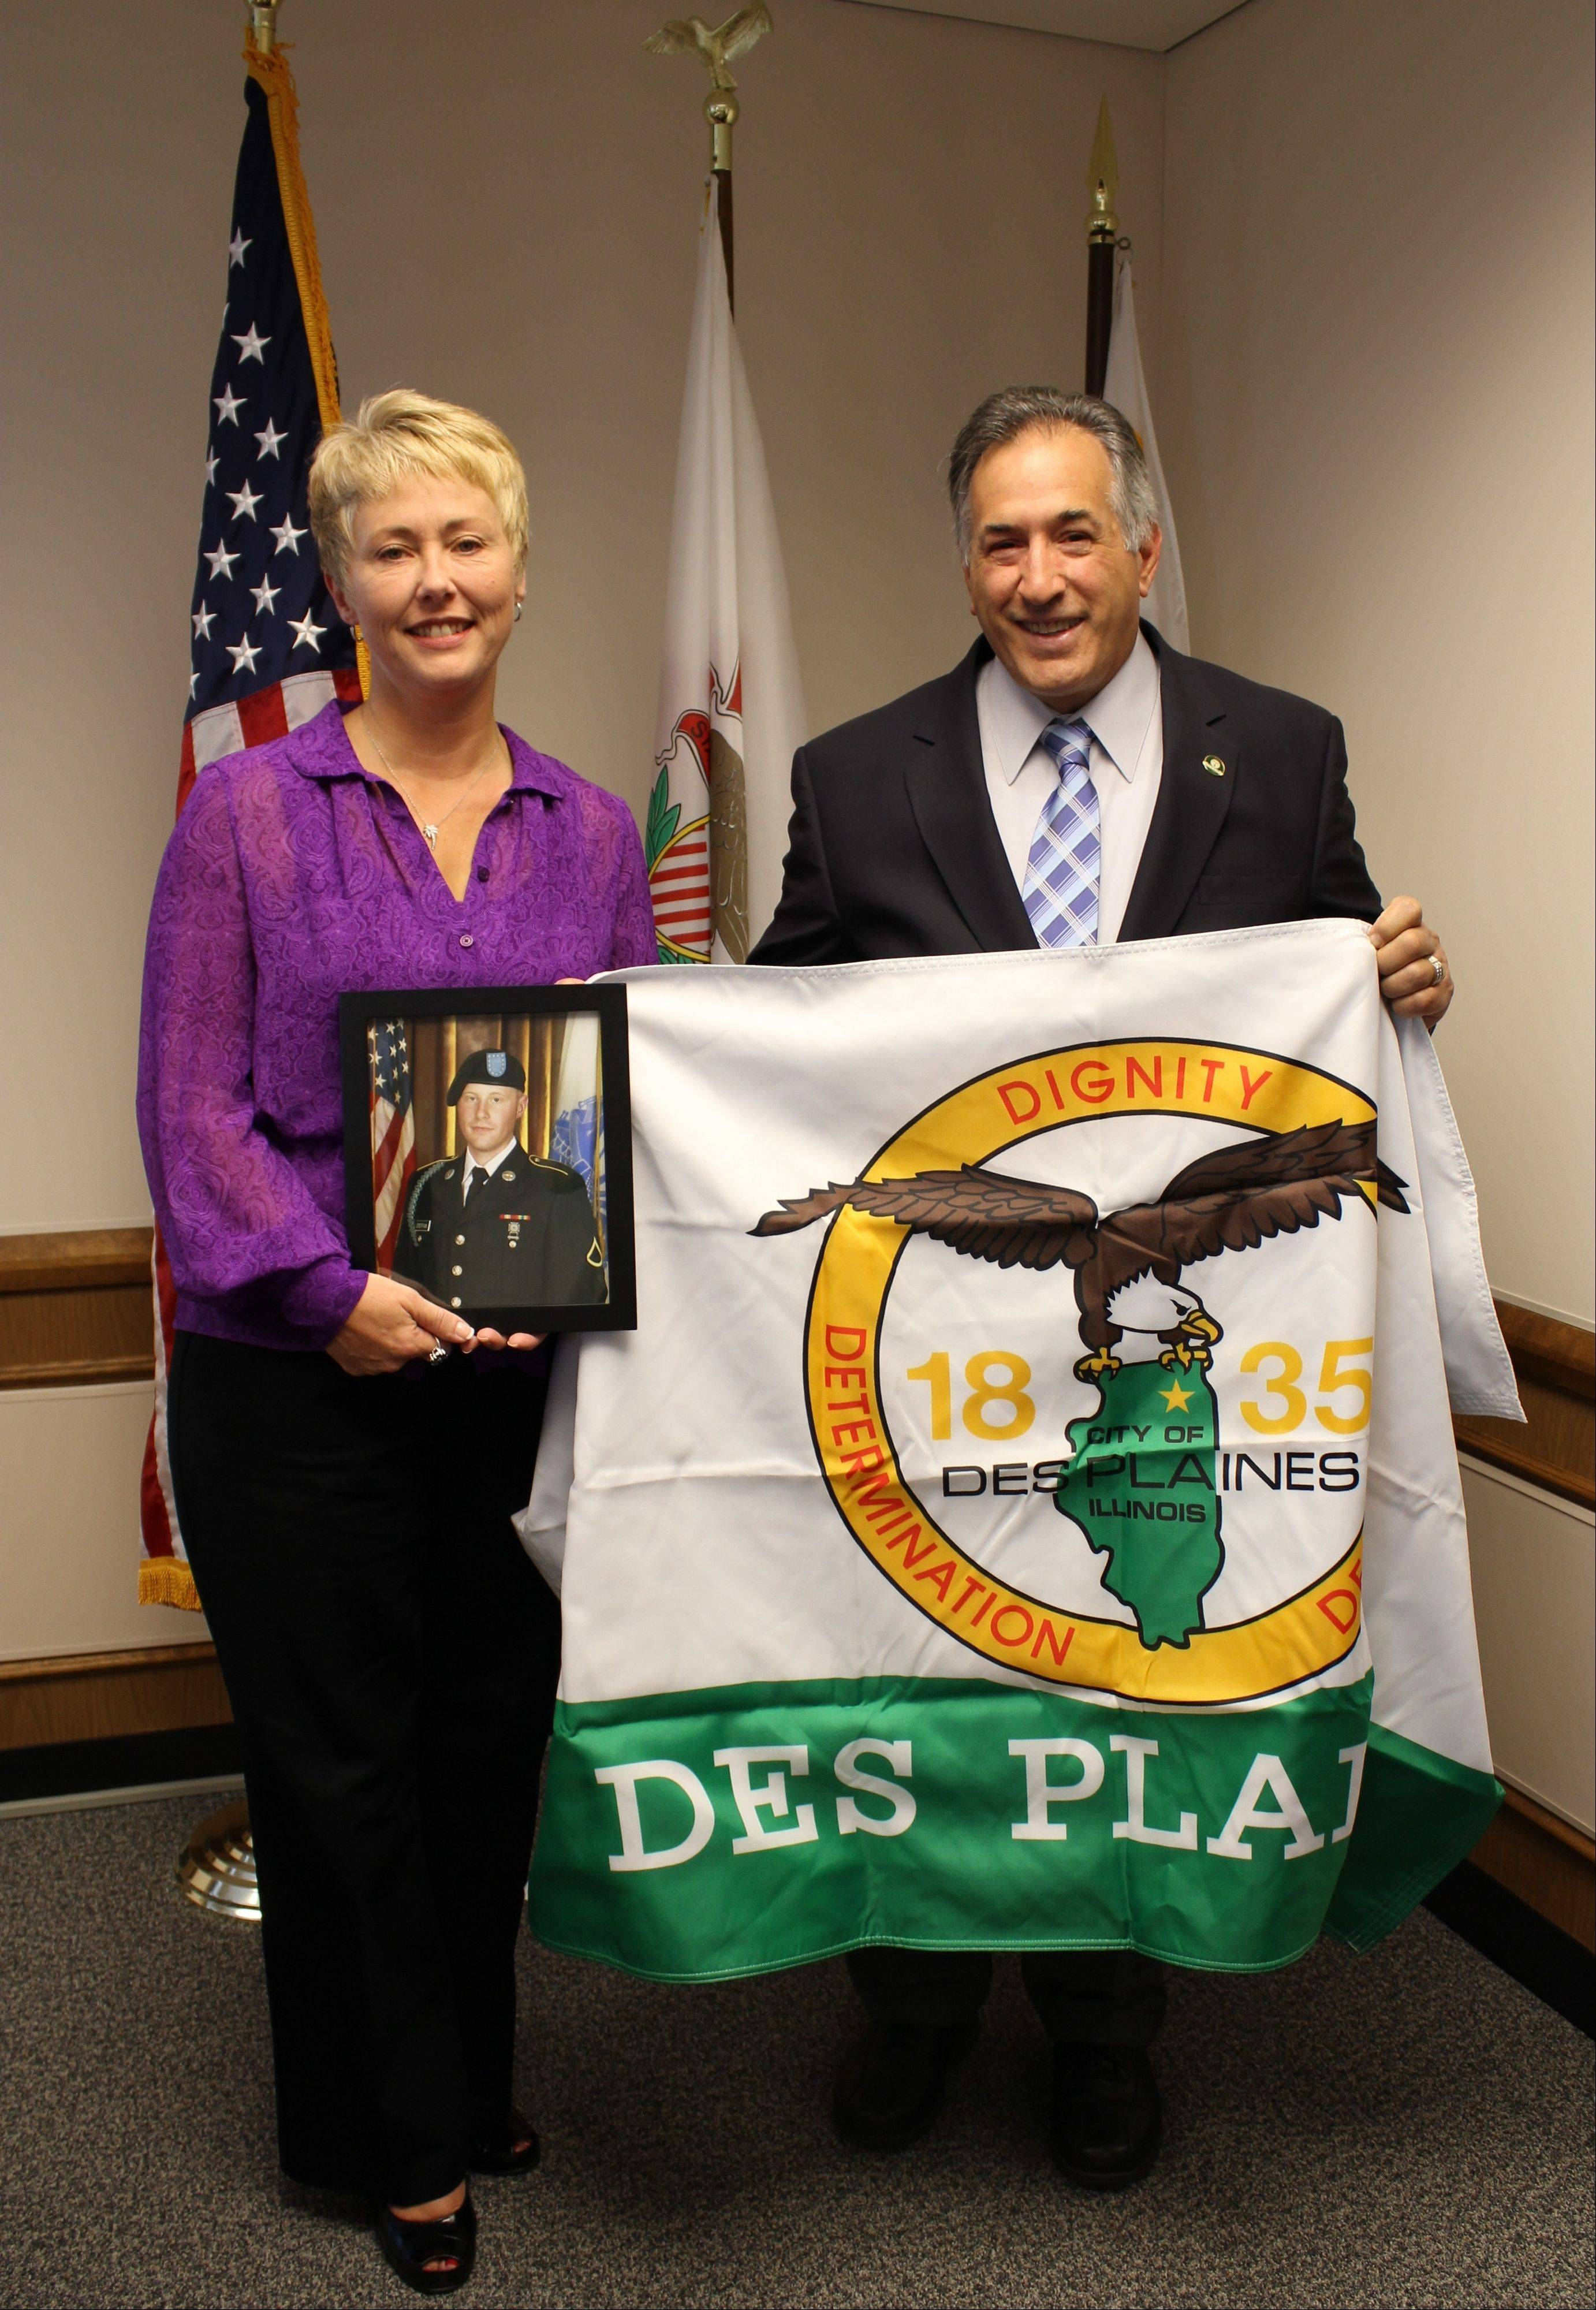 Resident Paula Steffan accepts a Des Plaines flag from Mayor Martin J. Moylan in the mayor�s office. Steffan will be sending the flag to her son, Jacob, serving in the Army in Afghanistan. Jacob joined the Army in 2010.